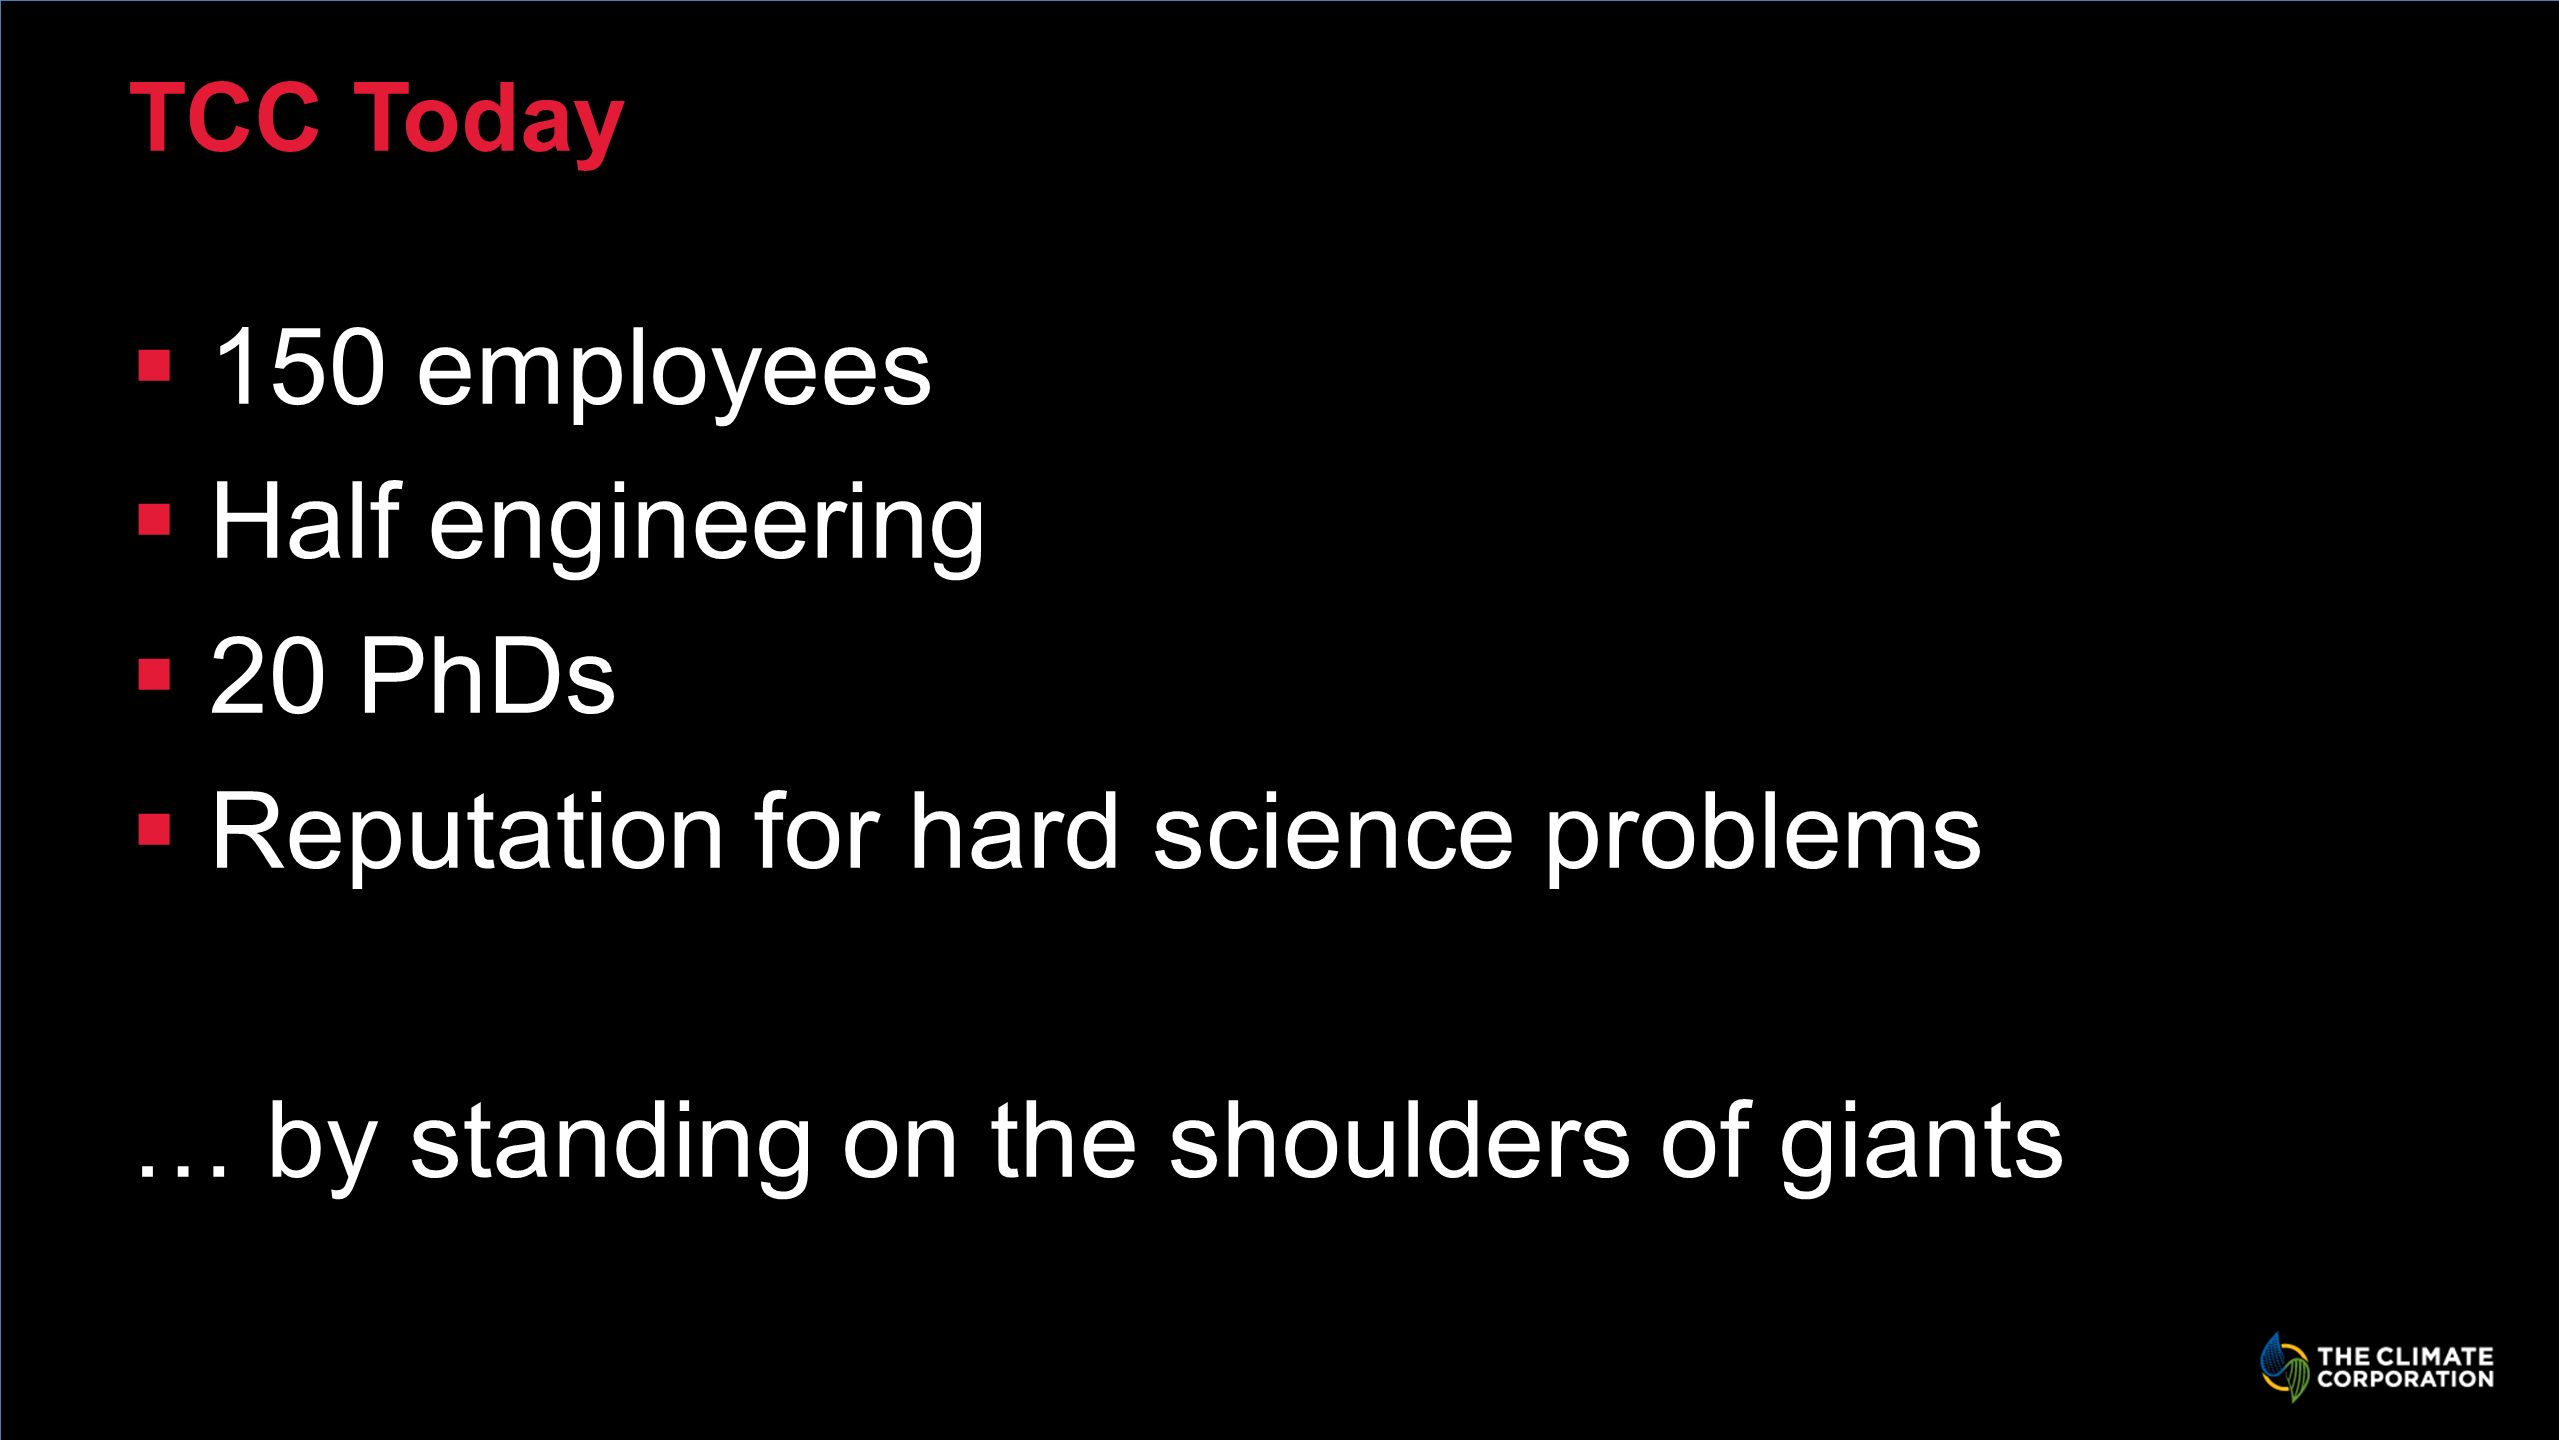 TCC Today 150 employees Half engineering 20 PhDs Reputation for hard science problems … by standing on the shoulders of giants